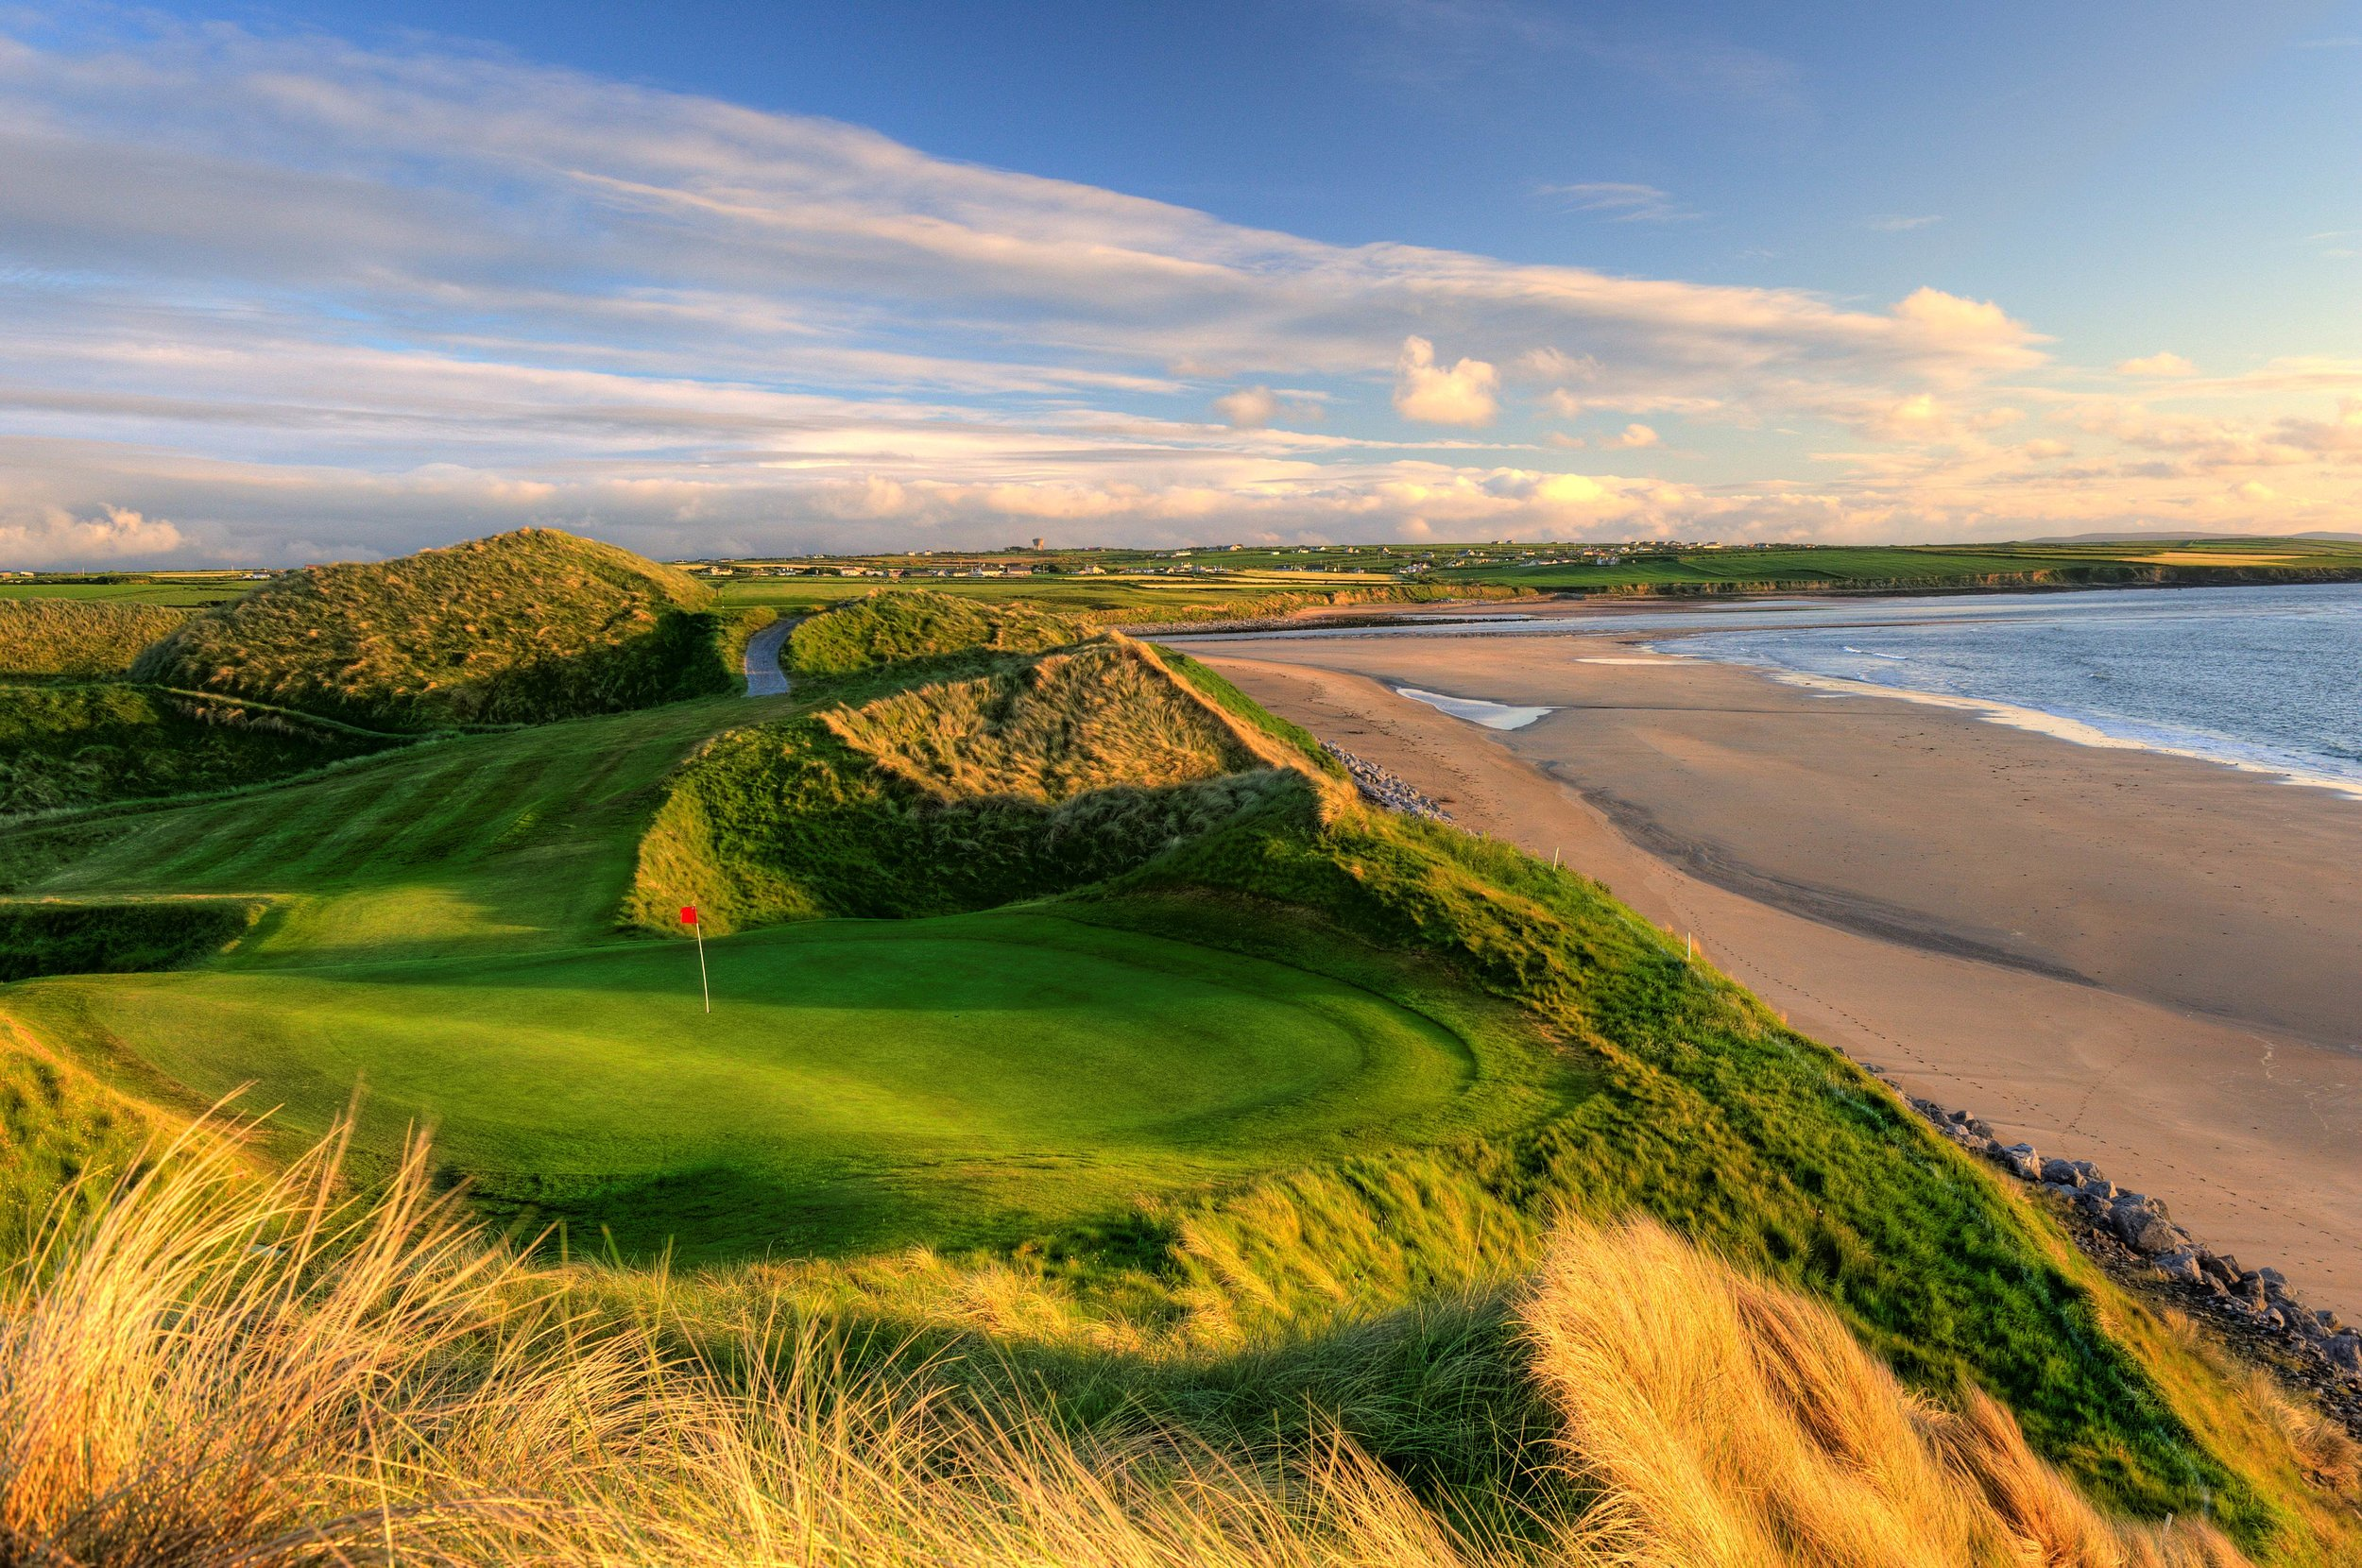 ballybunion-golf-course-ireland.jpg